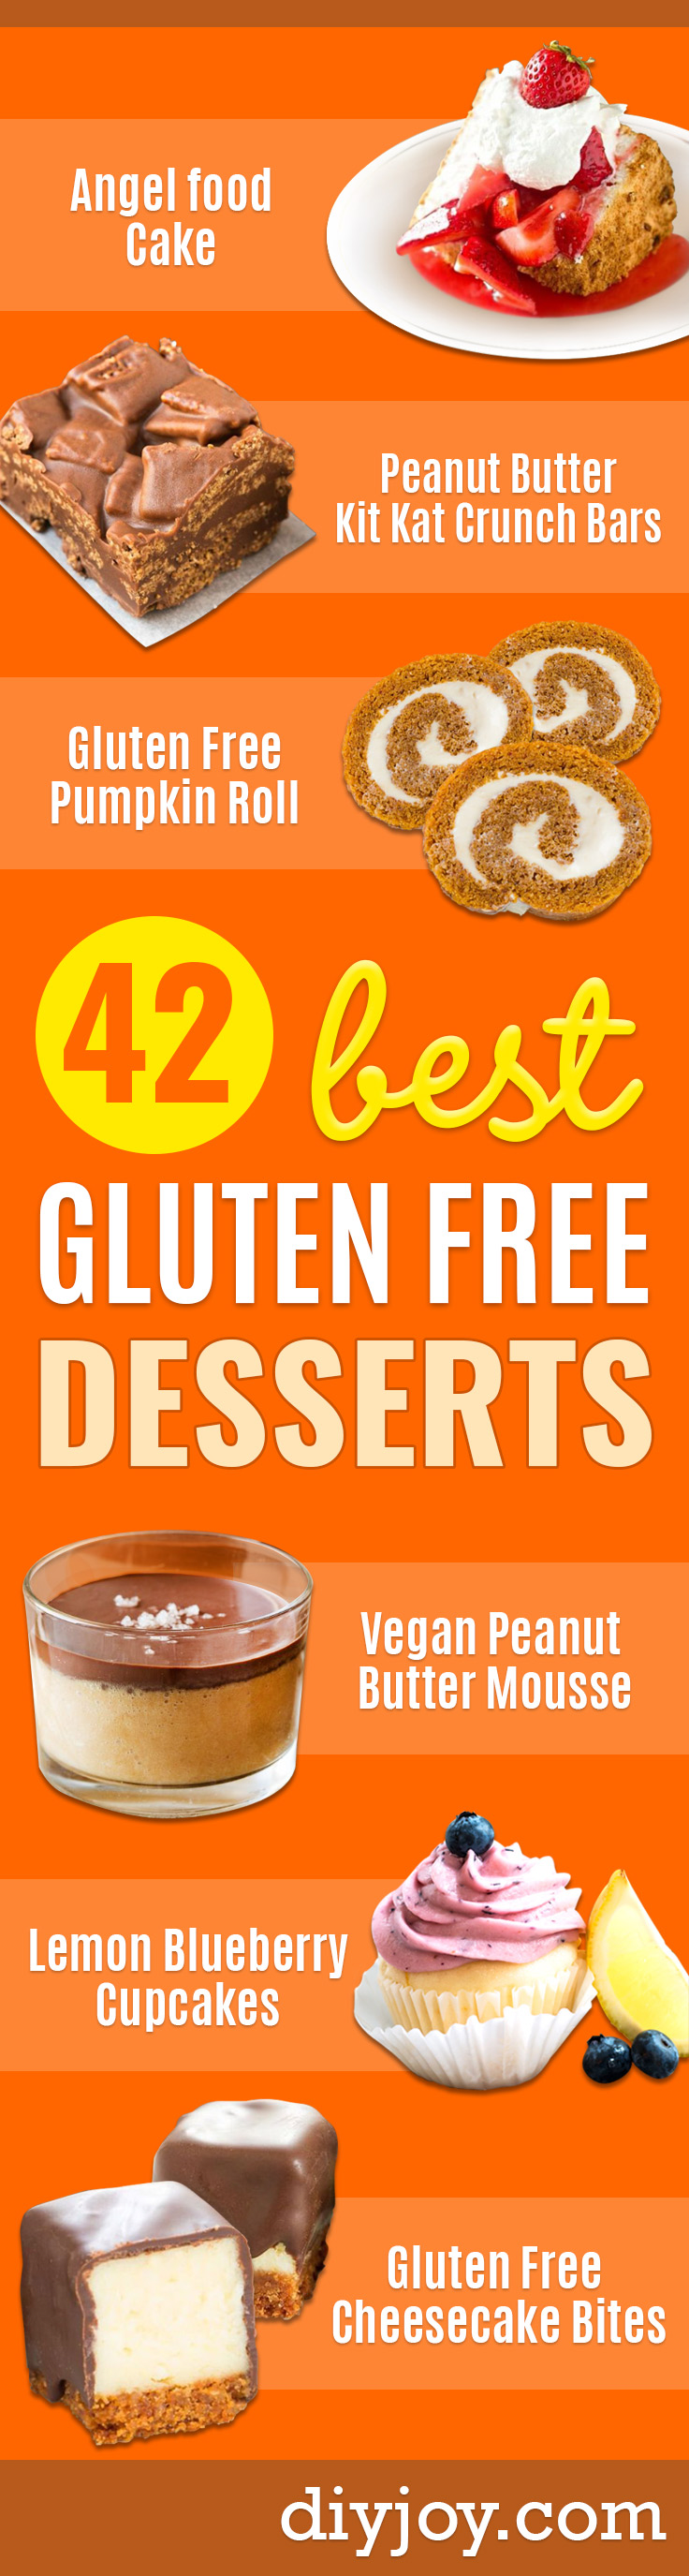 Gluten Free Desserts - Easy Recipes and Healthy Recipe Ideas for Cookies, Cake, Pie, Cupcakes, Cheesecake and Ice Cream - Best No Sugar Glutenfree Chocolate, No Bake Dessert, Fruit, Peach, Apple and Banana Dishes - Flourless Christmas, Thanksgiving and Holiday Dishes http://diyjoy.com/gluten-free-desserts